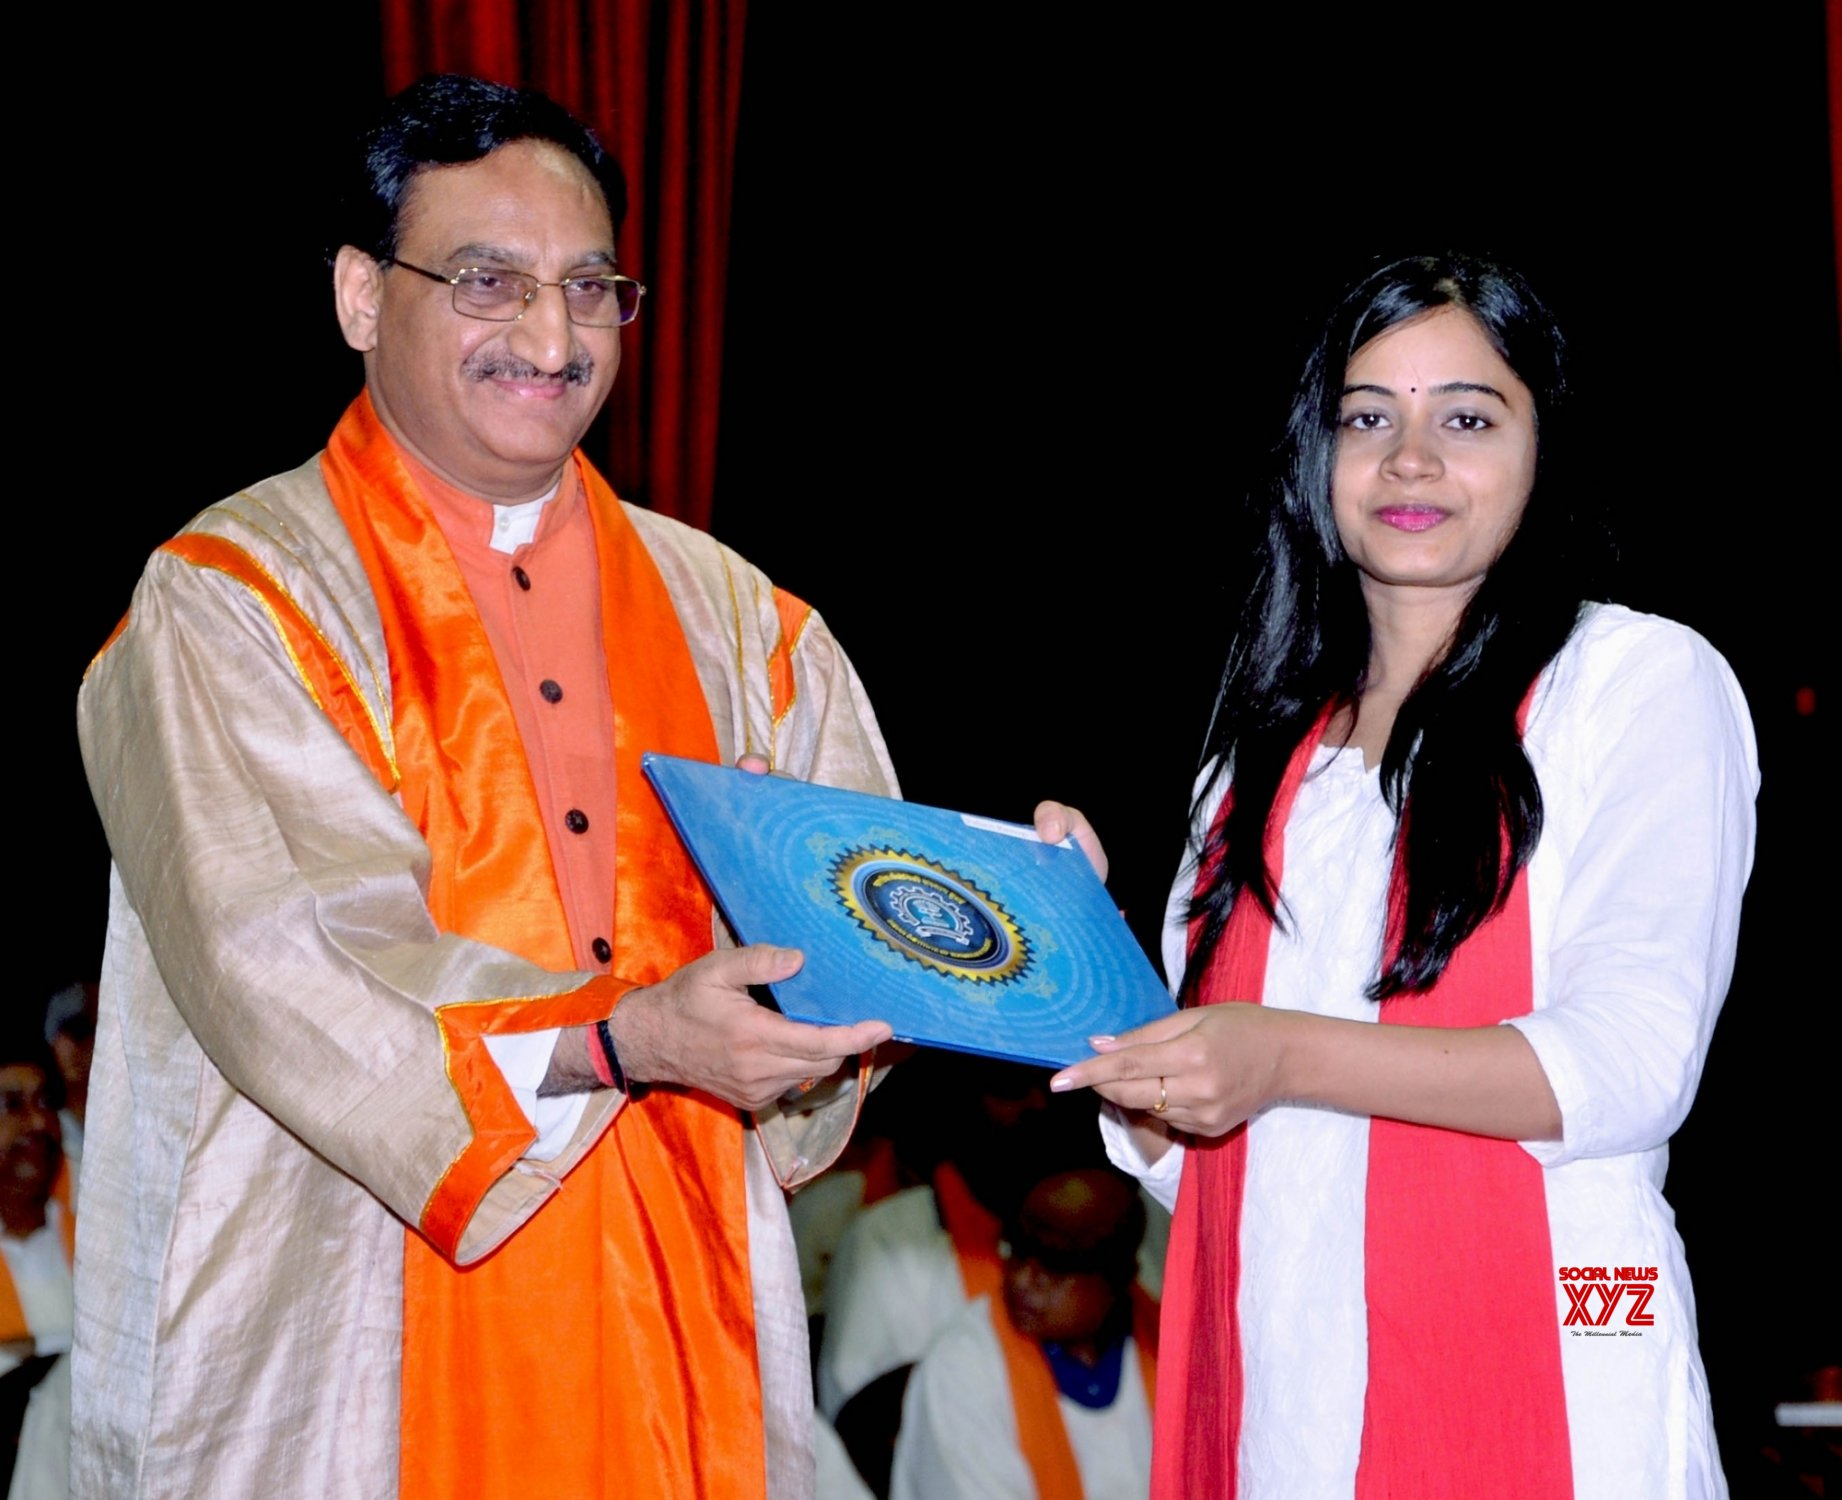 Students don traditional attire at IIT-B convocation - Social News XYZ